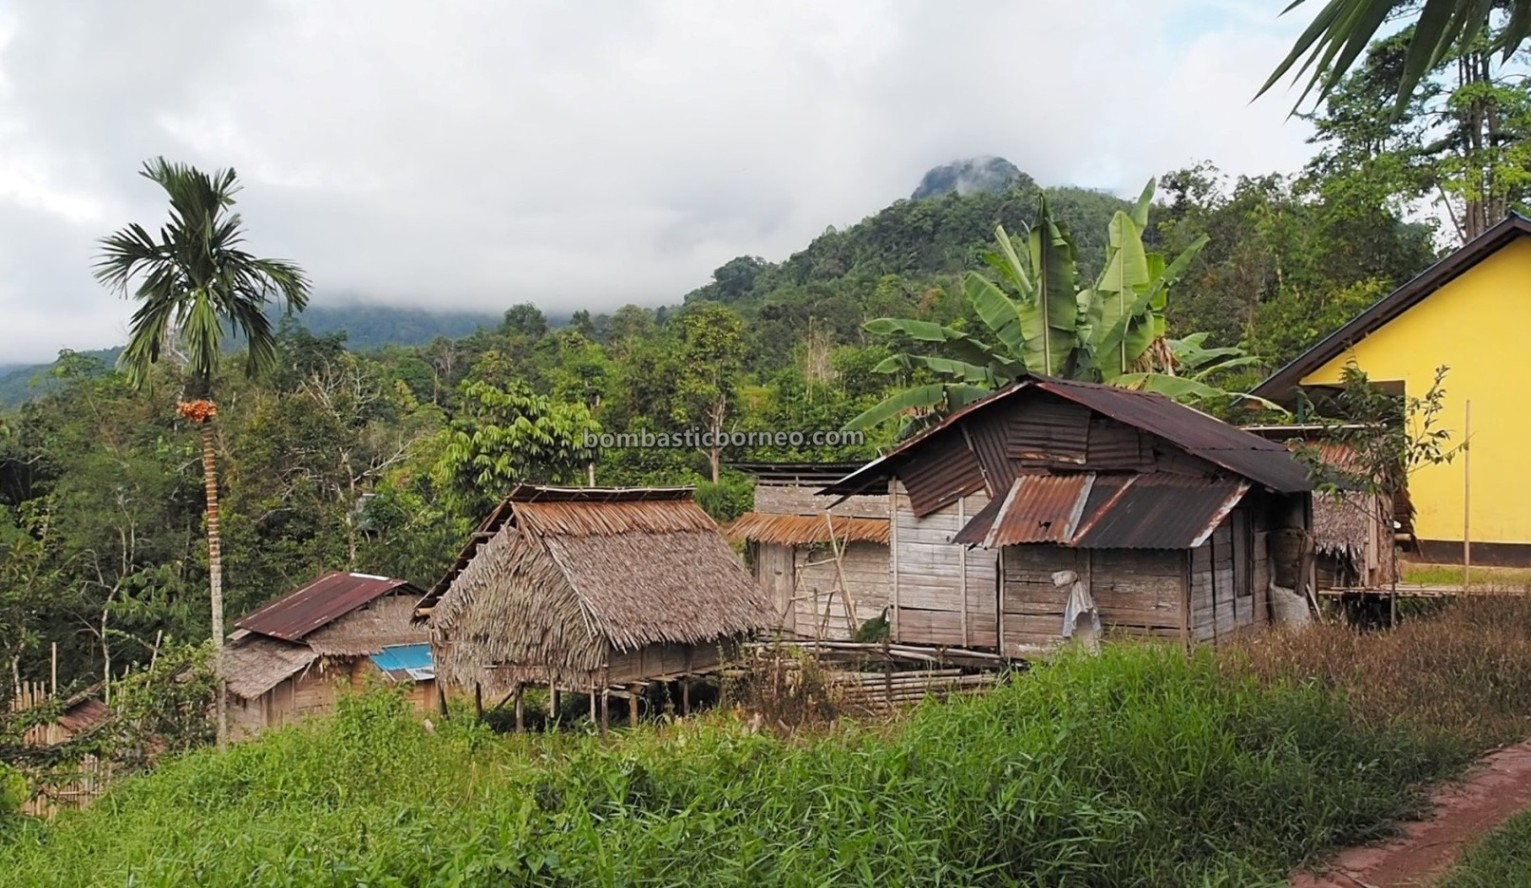 authentic, Traditional, village, destination, exploration, ethnic, native, Dayak Bidayuh, tribe, Tourism, travel guide, cross border, Borneo, 婆罗洲比达友部落, 印尼西加里曼丹